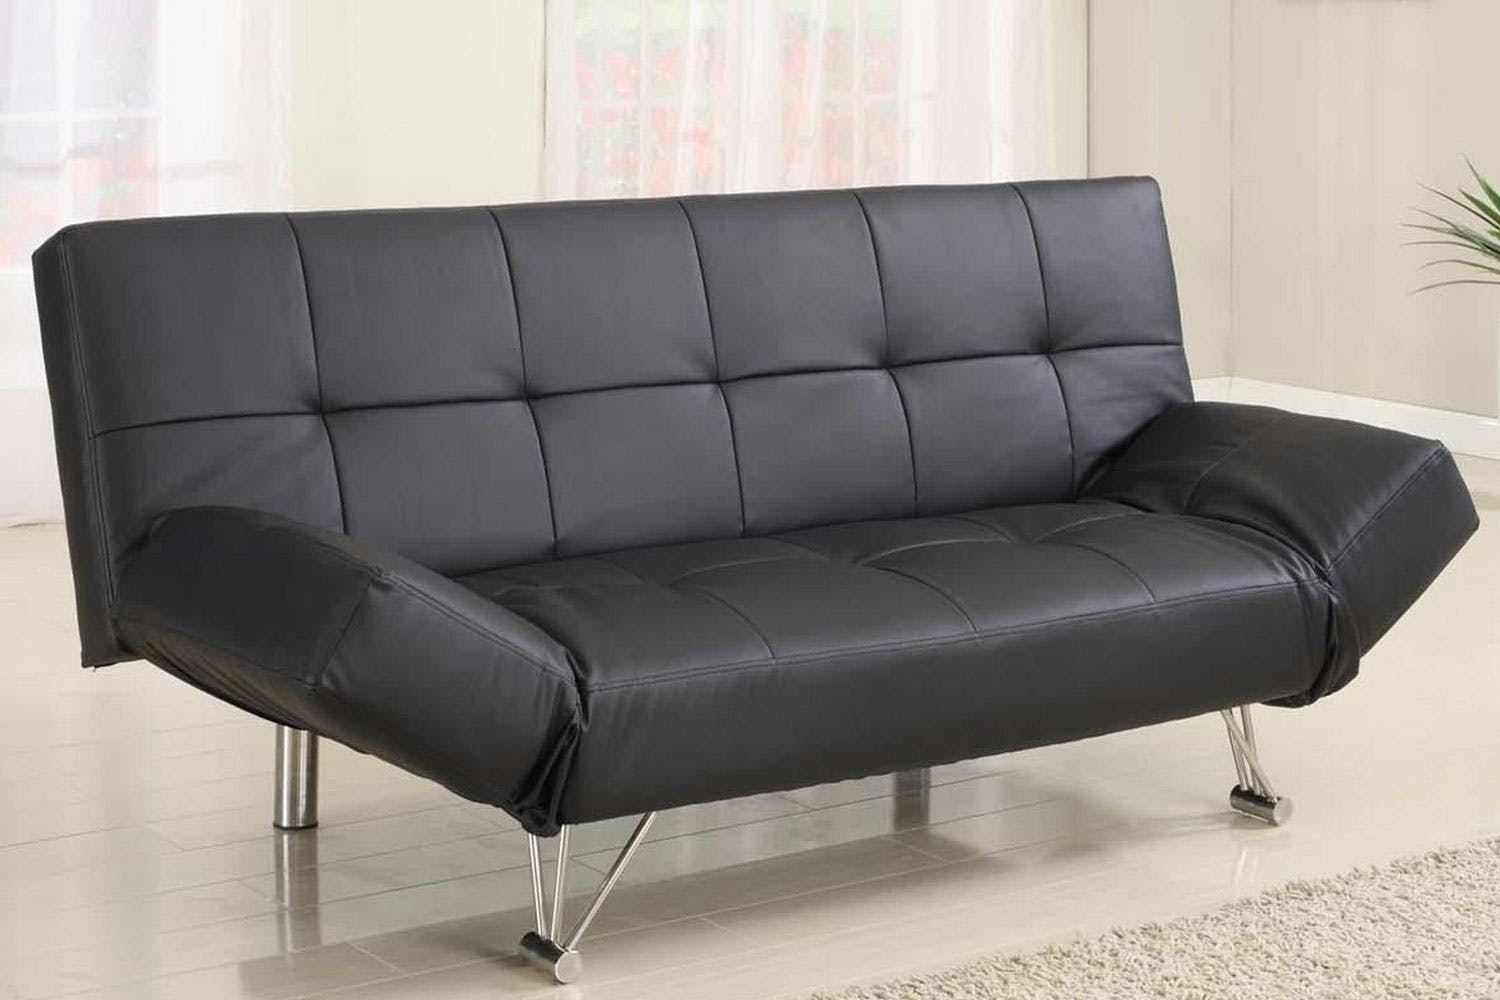 celeste click clack sofa bed harvey norman harvey. Black Bedroom Furniture Sets. Home Design Ideas